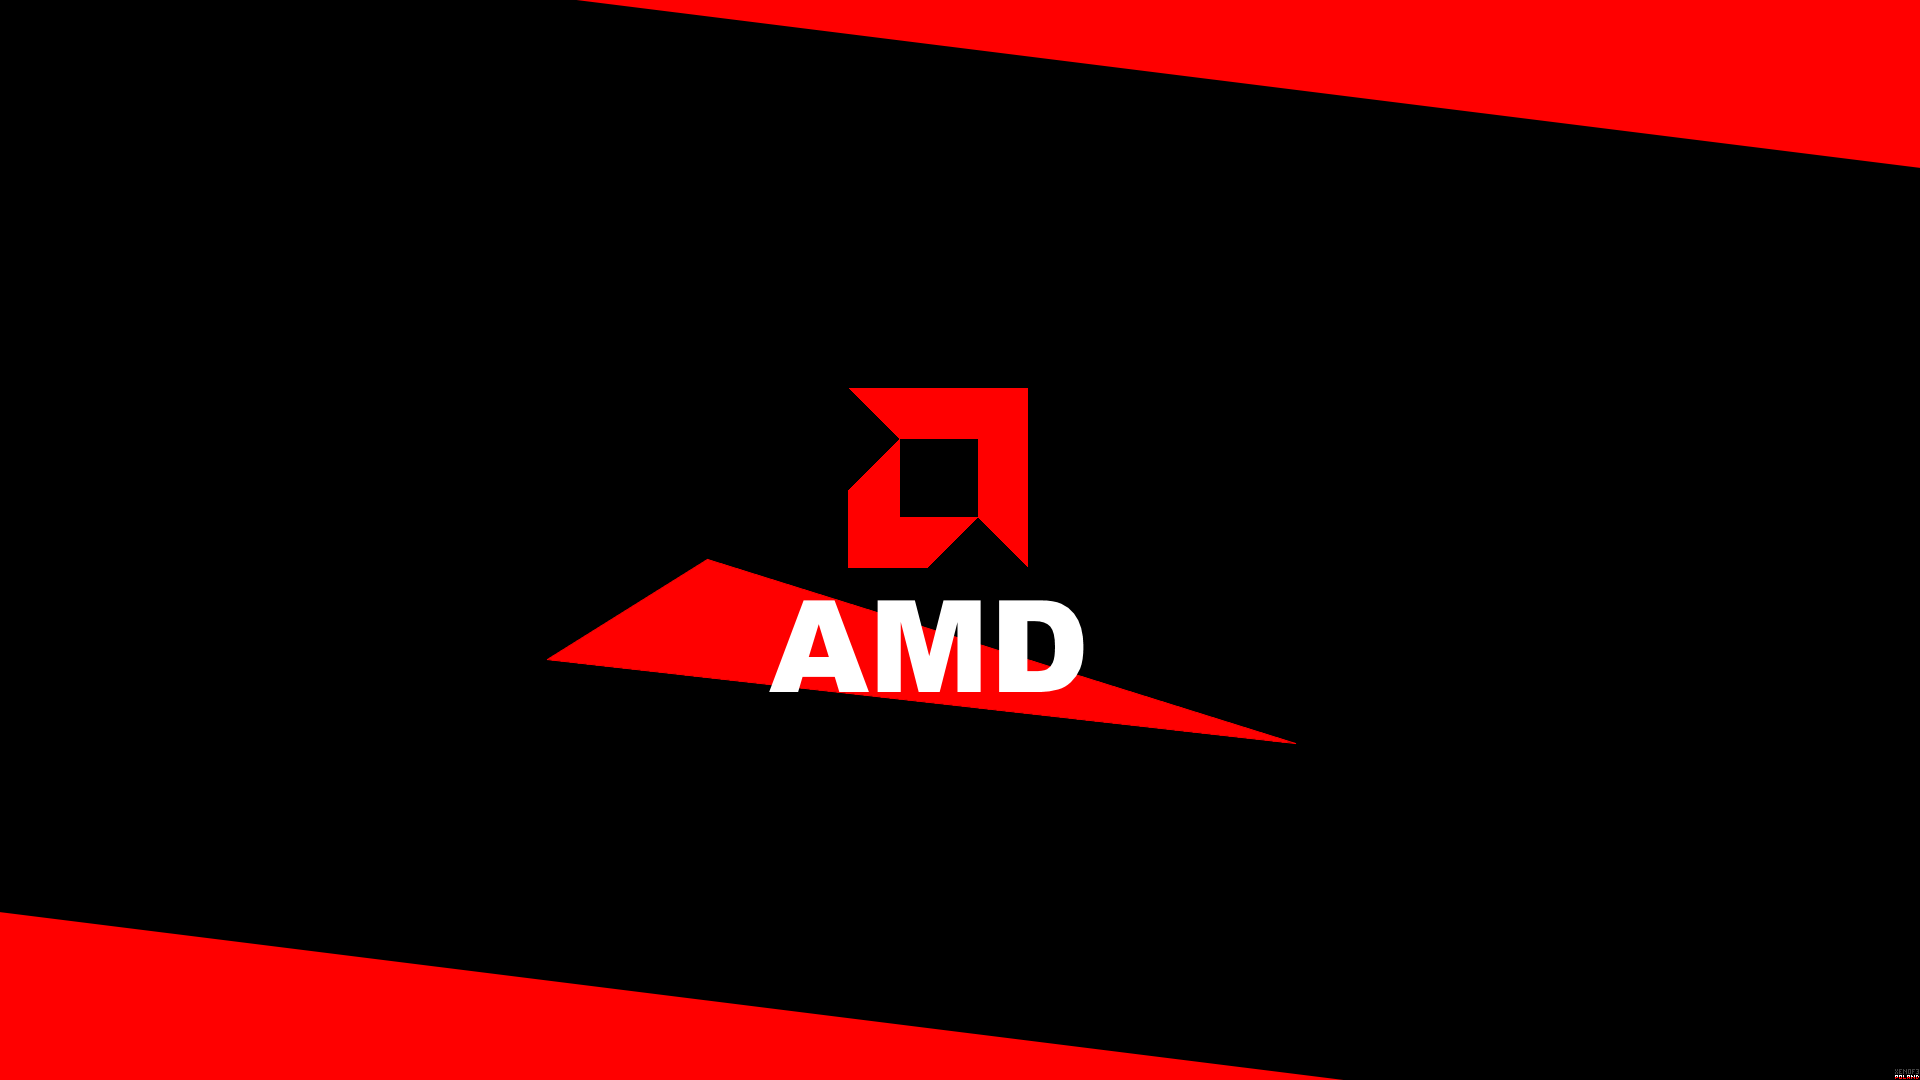 Leaked AMD Roadmap Suggests RDNA 2 May be Out in 2020